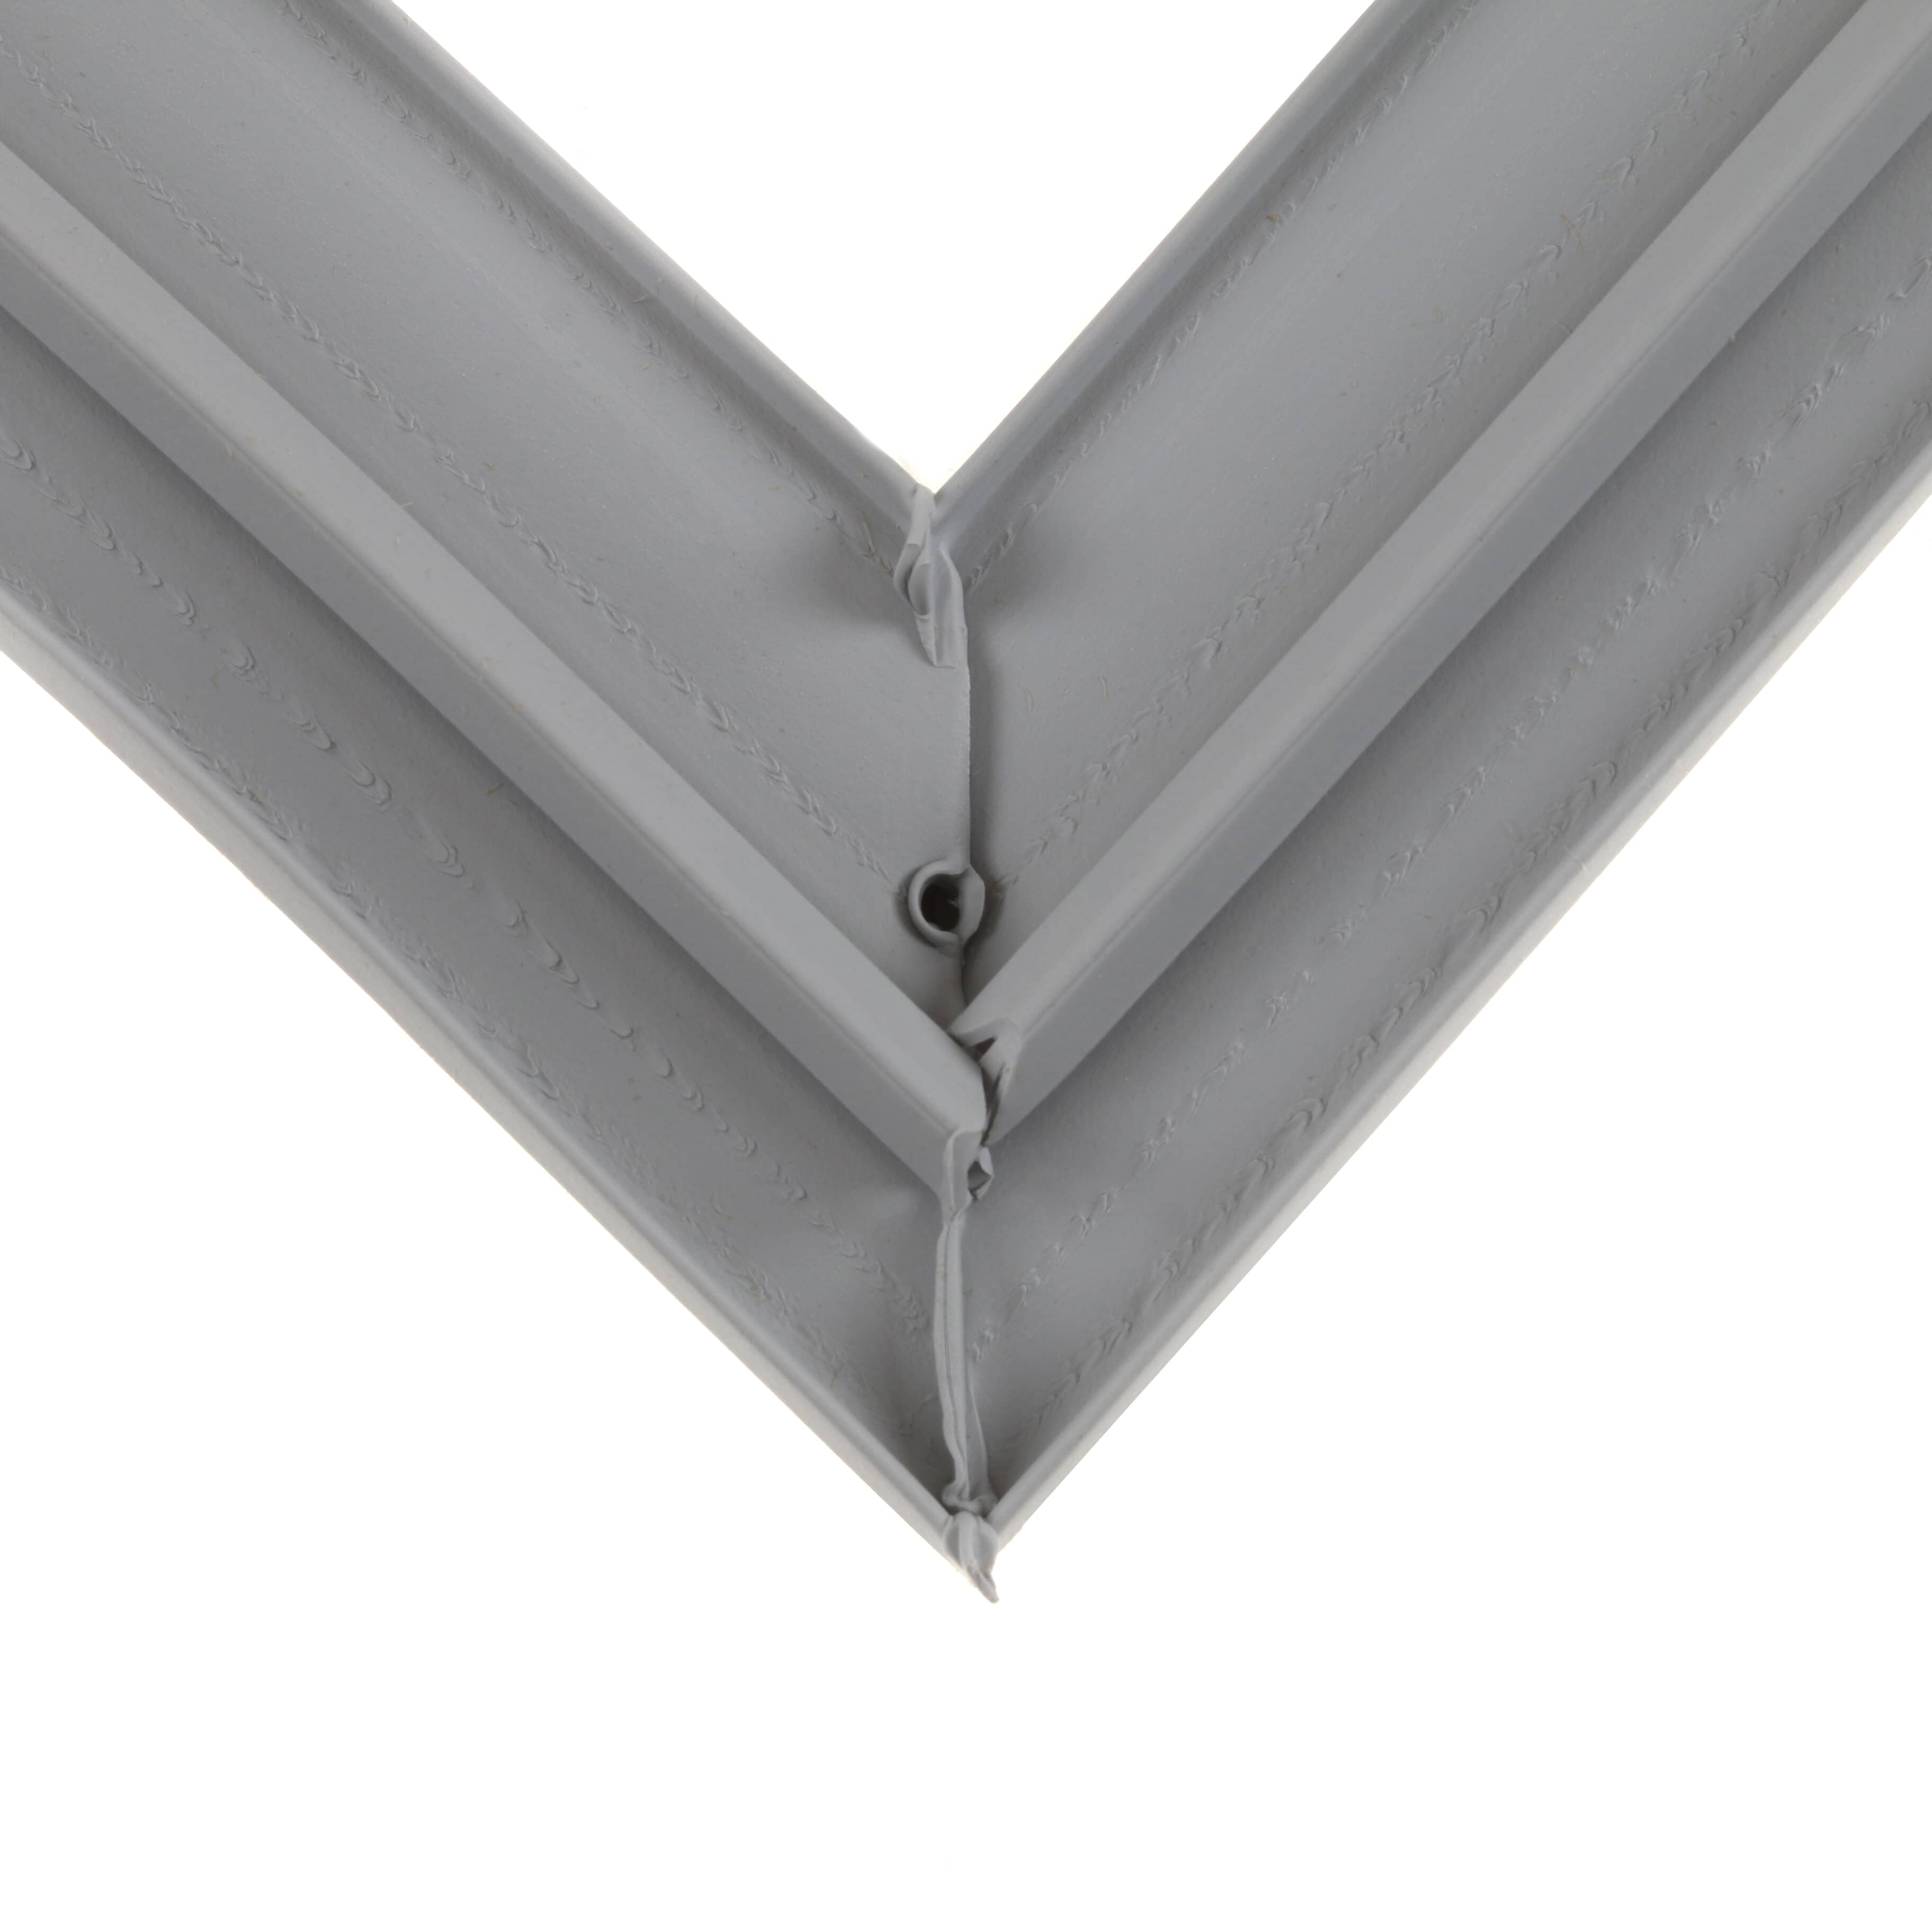 """TraulsenSVC-60288-00Door Gasket, Easy Clean for CUC 48 S, 20-5/16"""" x 26-5/16"""""""